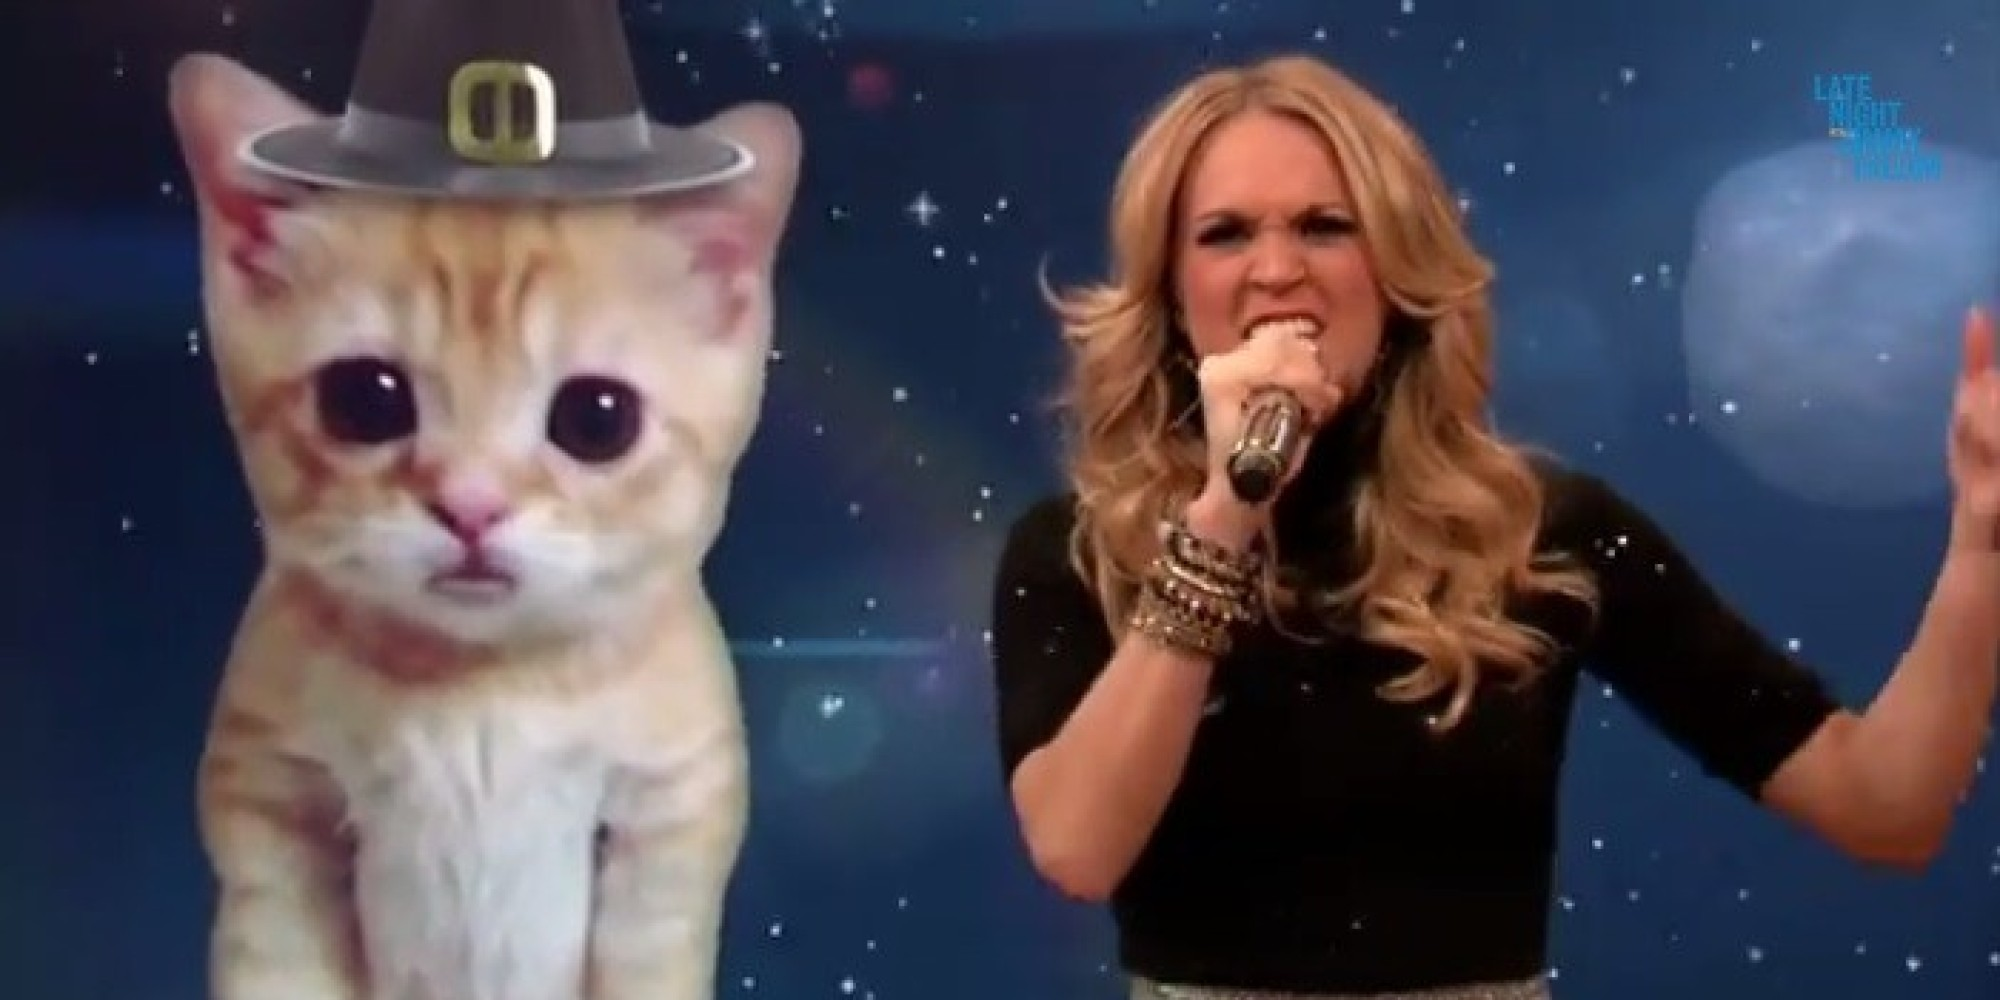 Carrie underwood parodies miley cyrus 39 ama performance on for Jimmy fallon miley cyrus islands in the stream